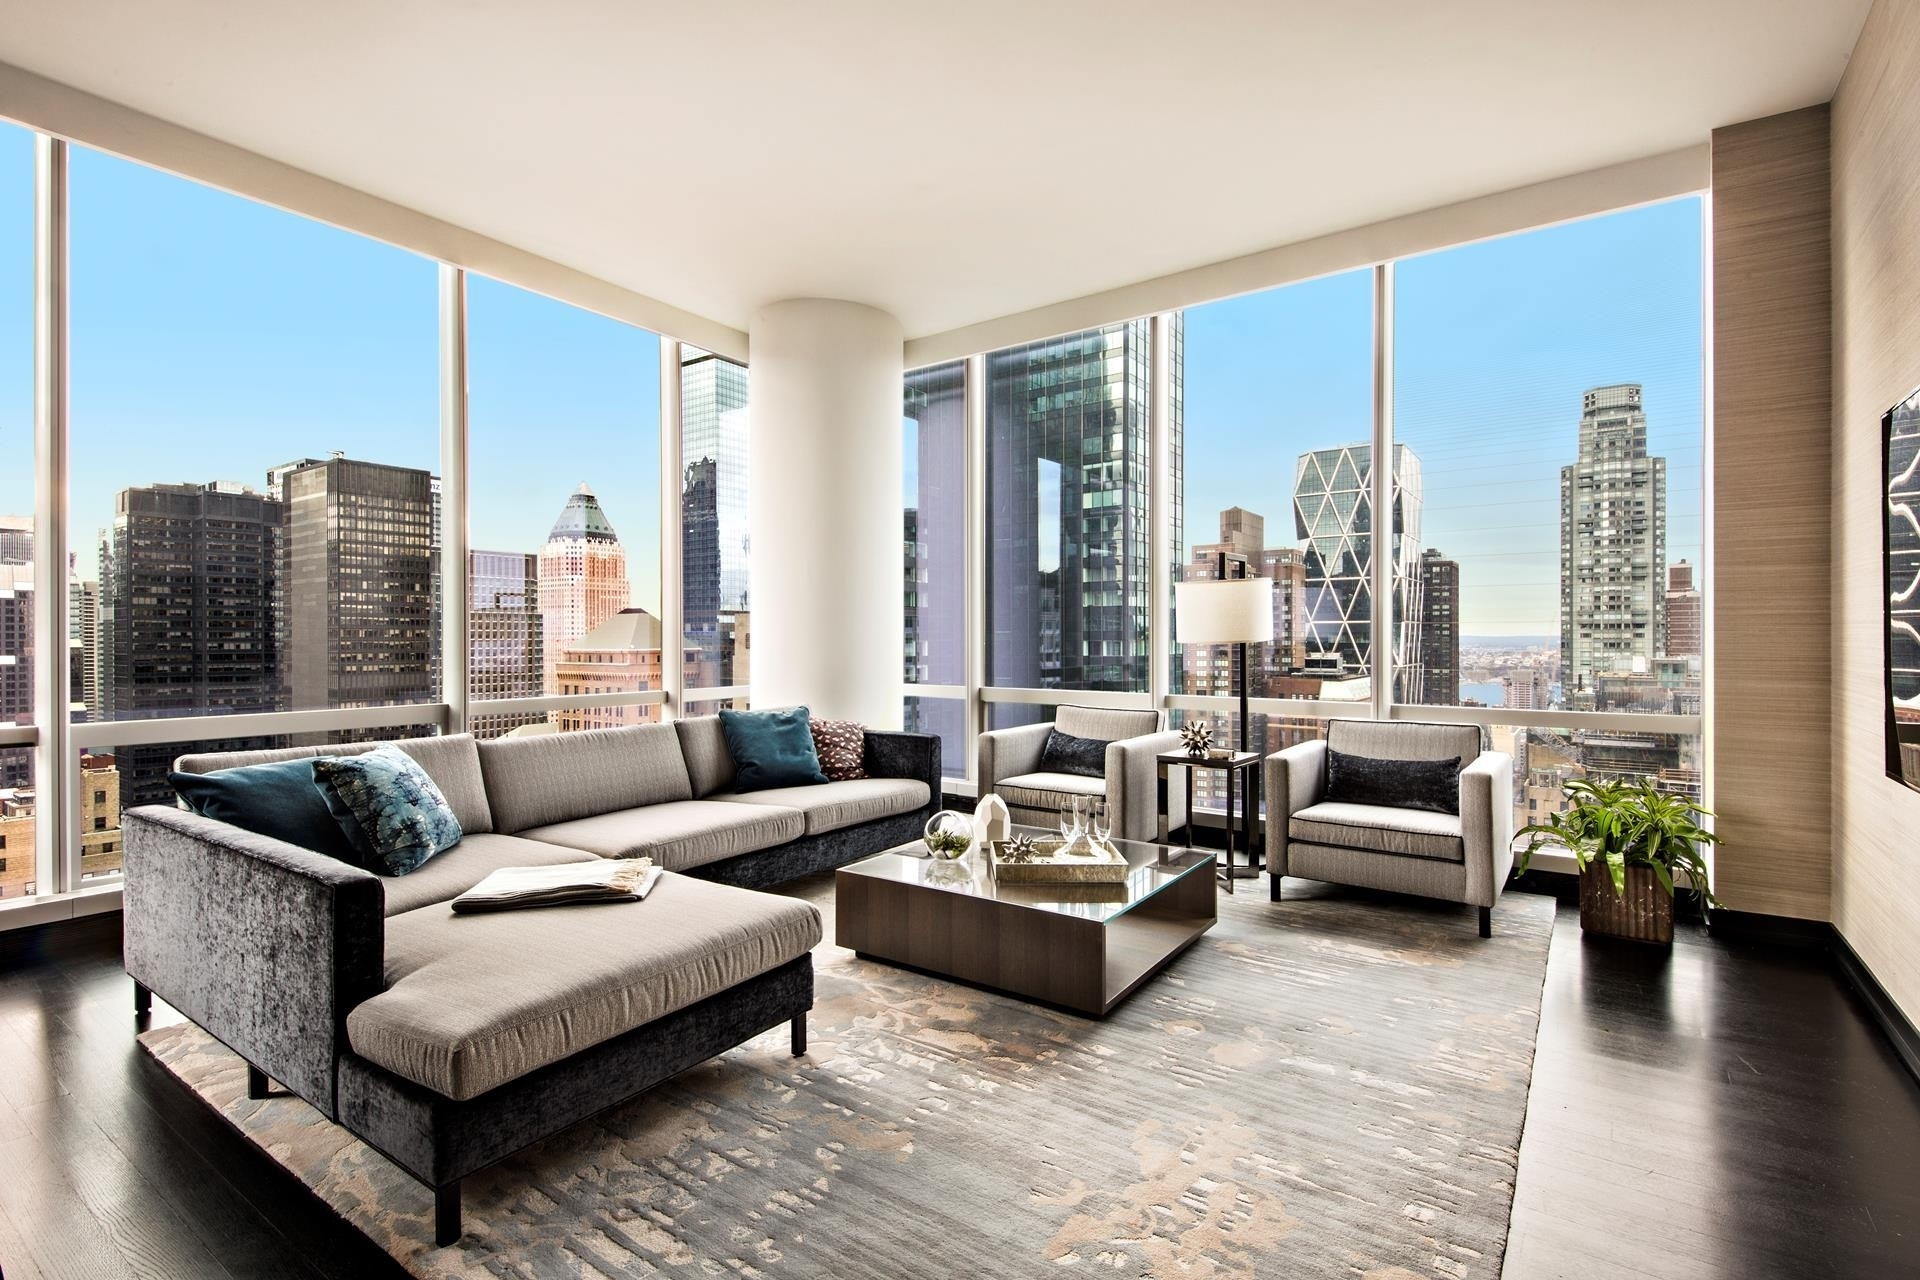 Property en One57, 157 West 57th St, 38C Midtown West, New York, NY 10019